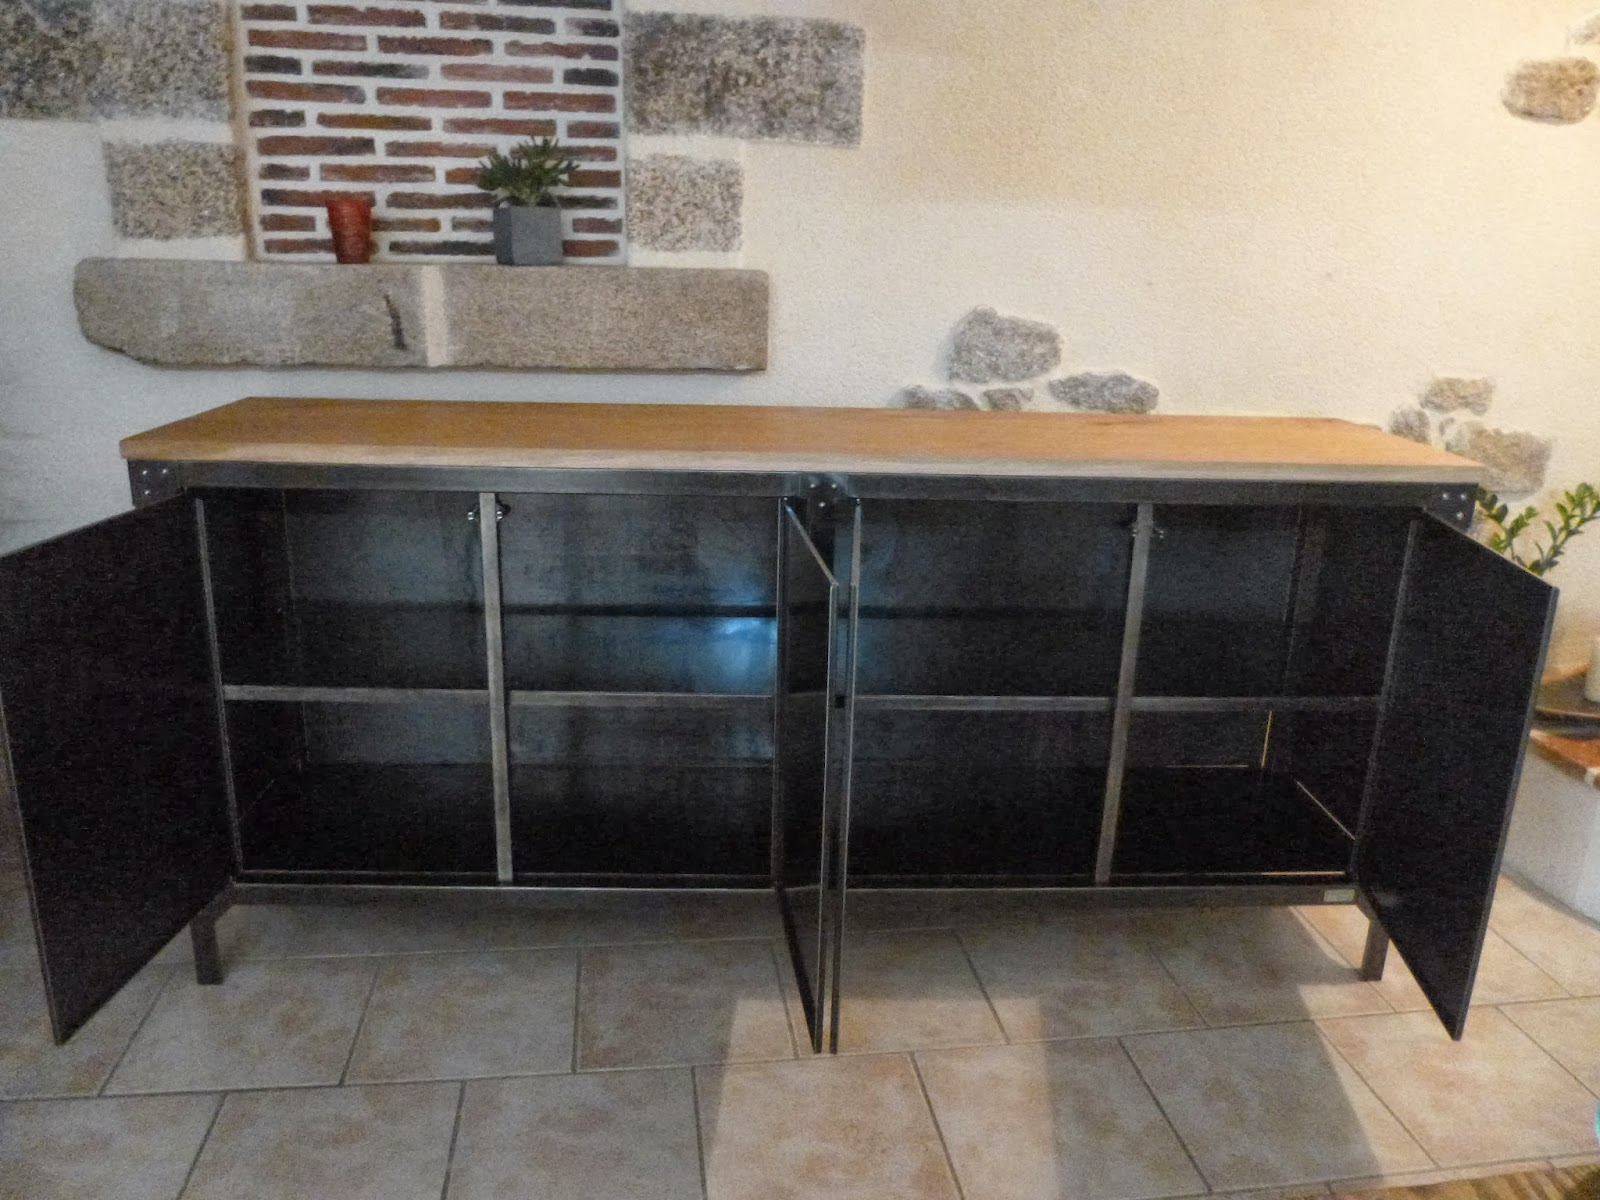 Meusieur Meuble C.factory Creation: Buffet Metal Et Bois